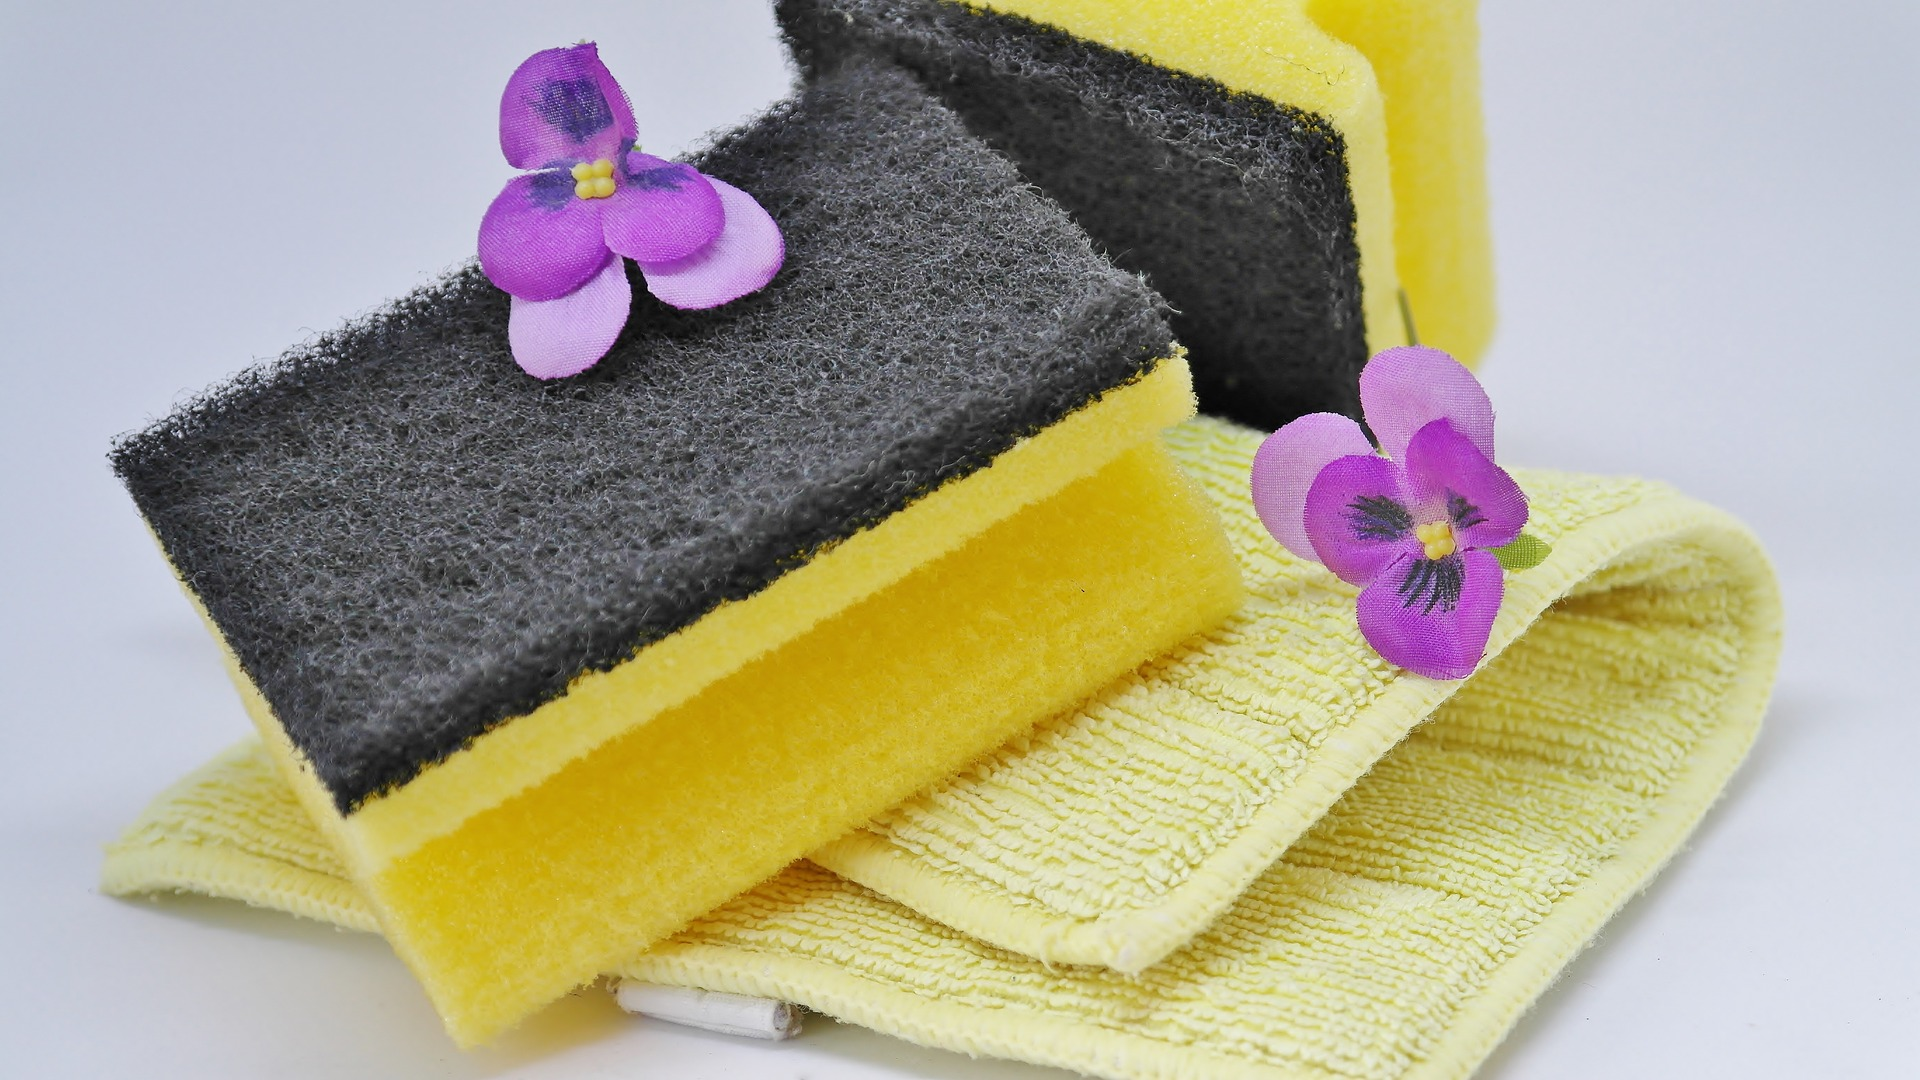 Spring Cleaning Checklist Klamath Falls, OR